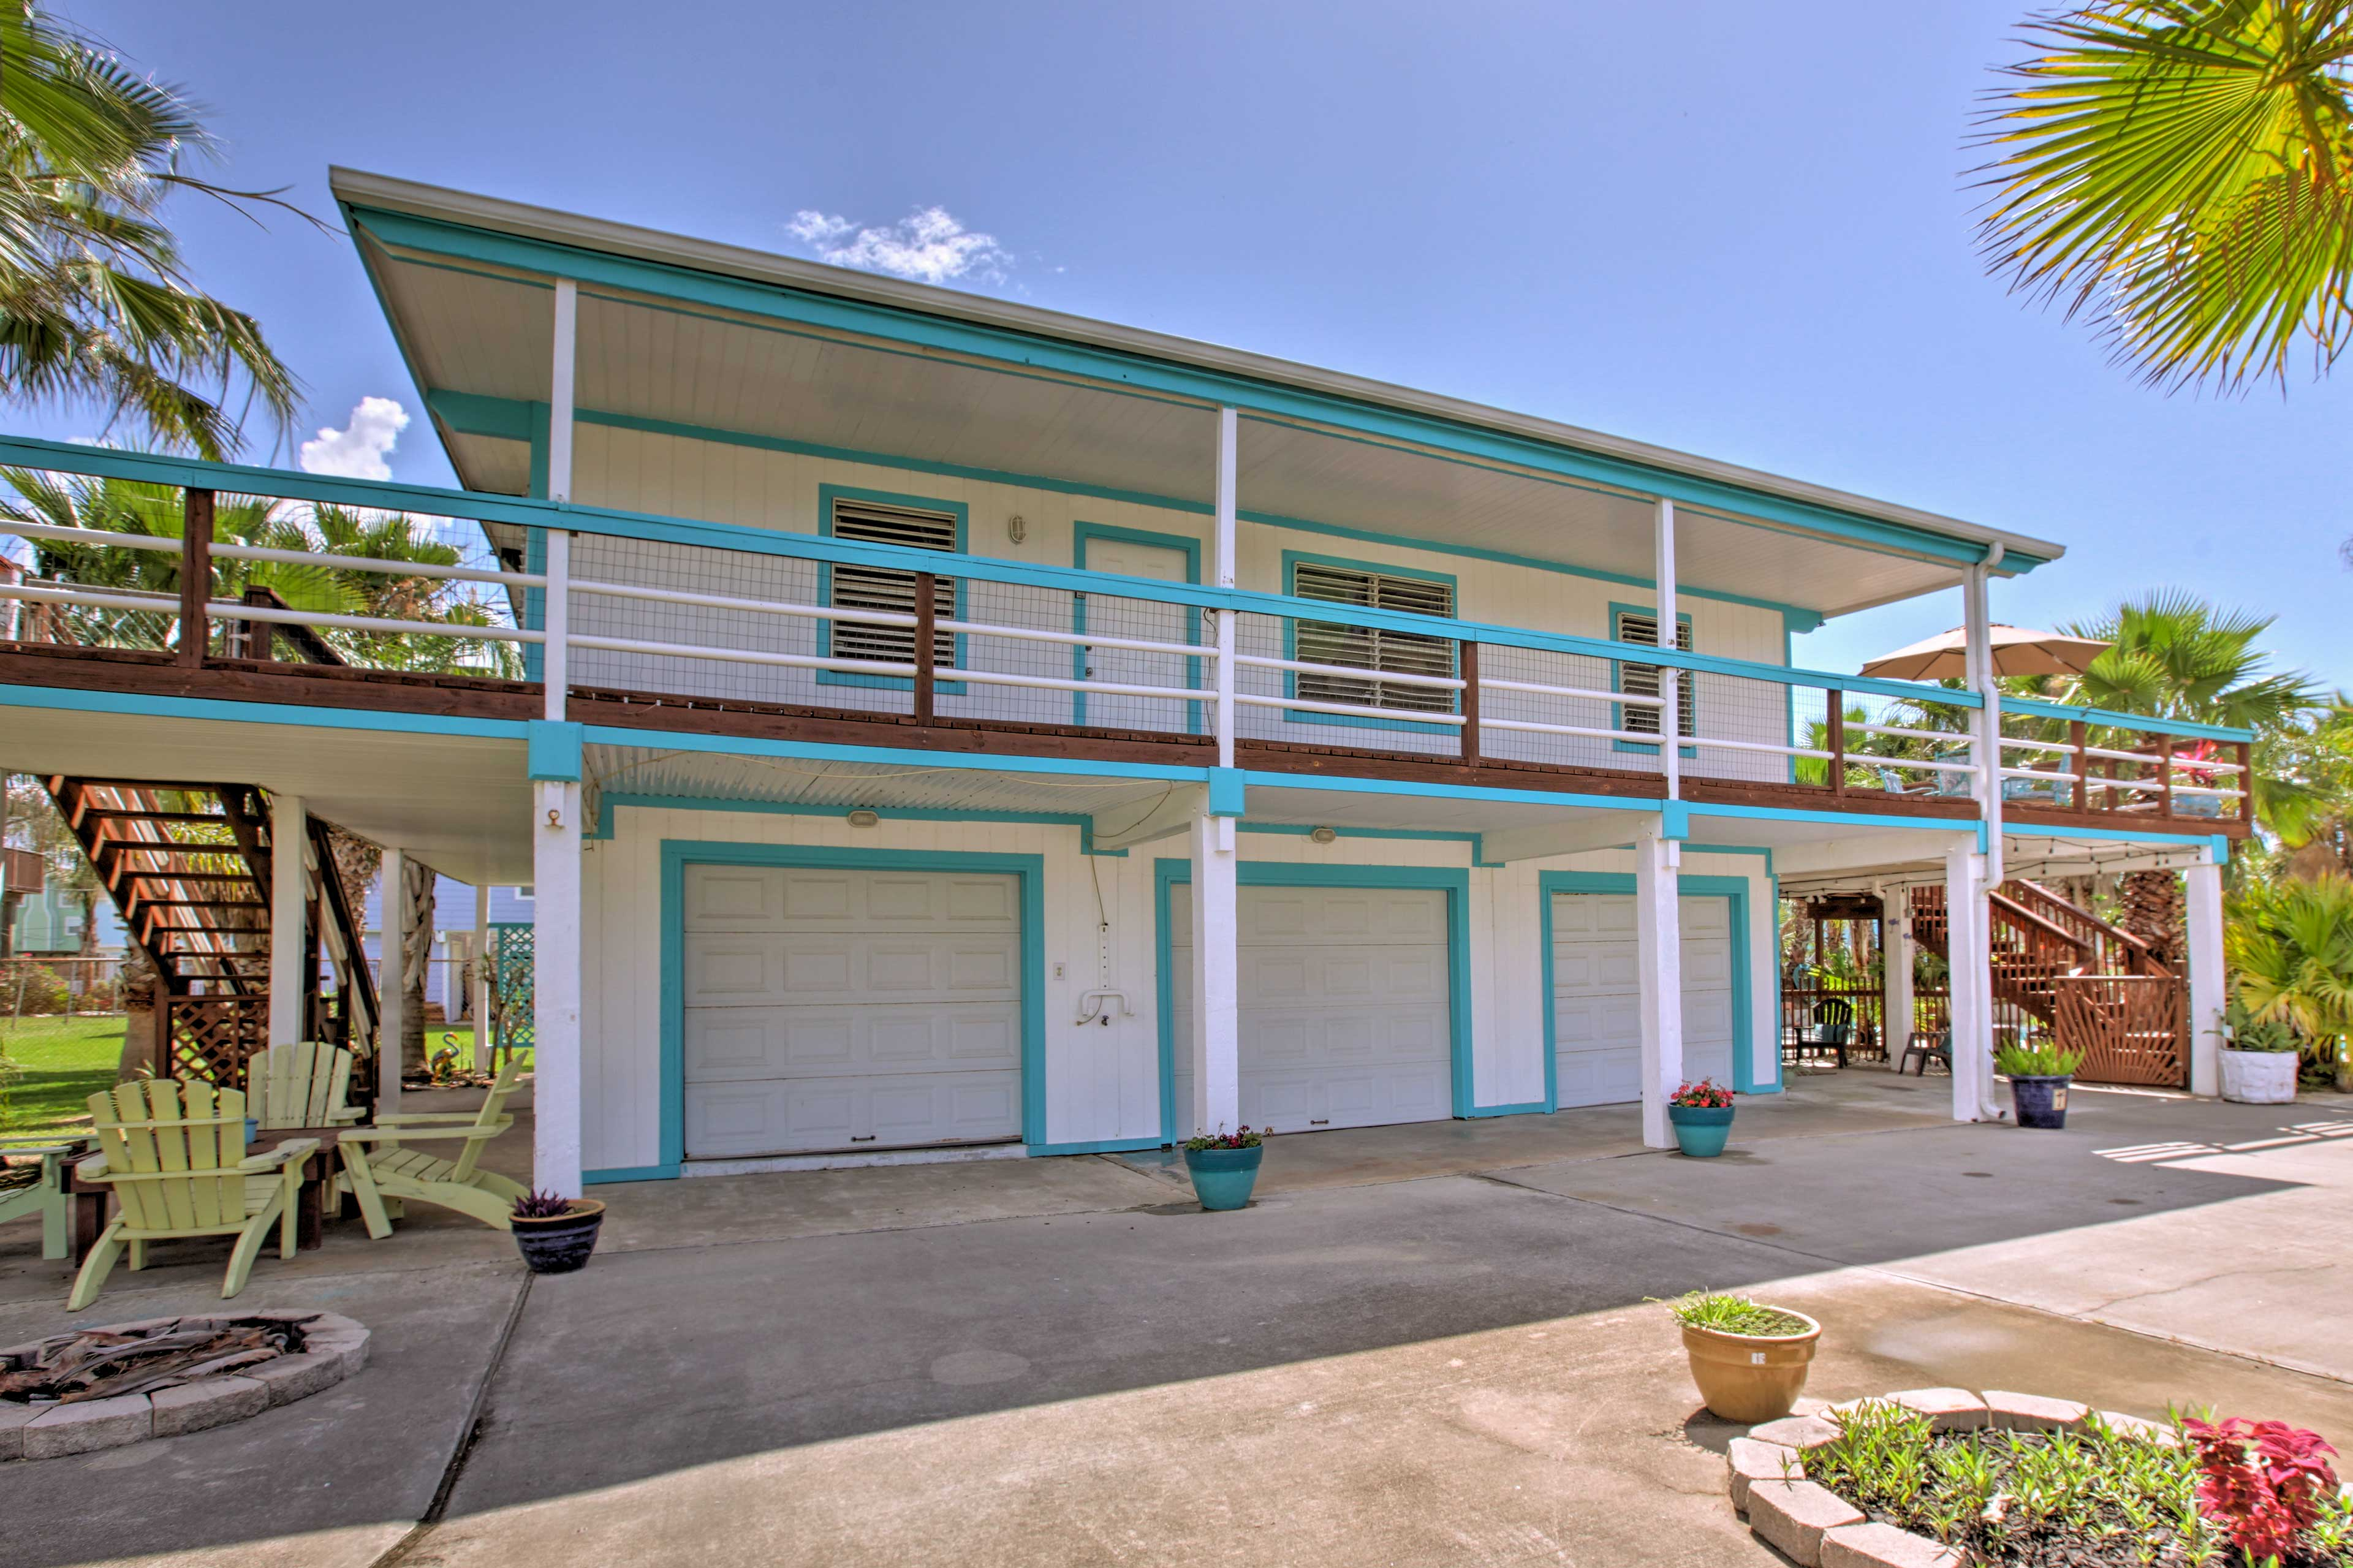 Escape the stresses of everyday life at this Galveston vacation rental house.